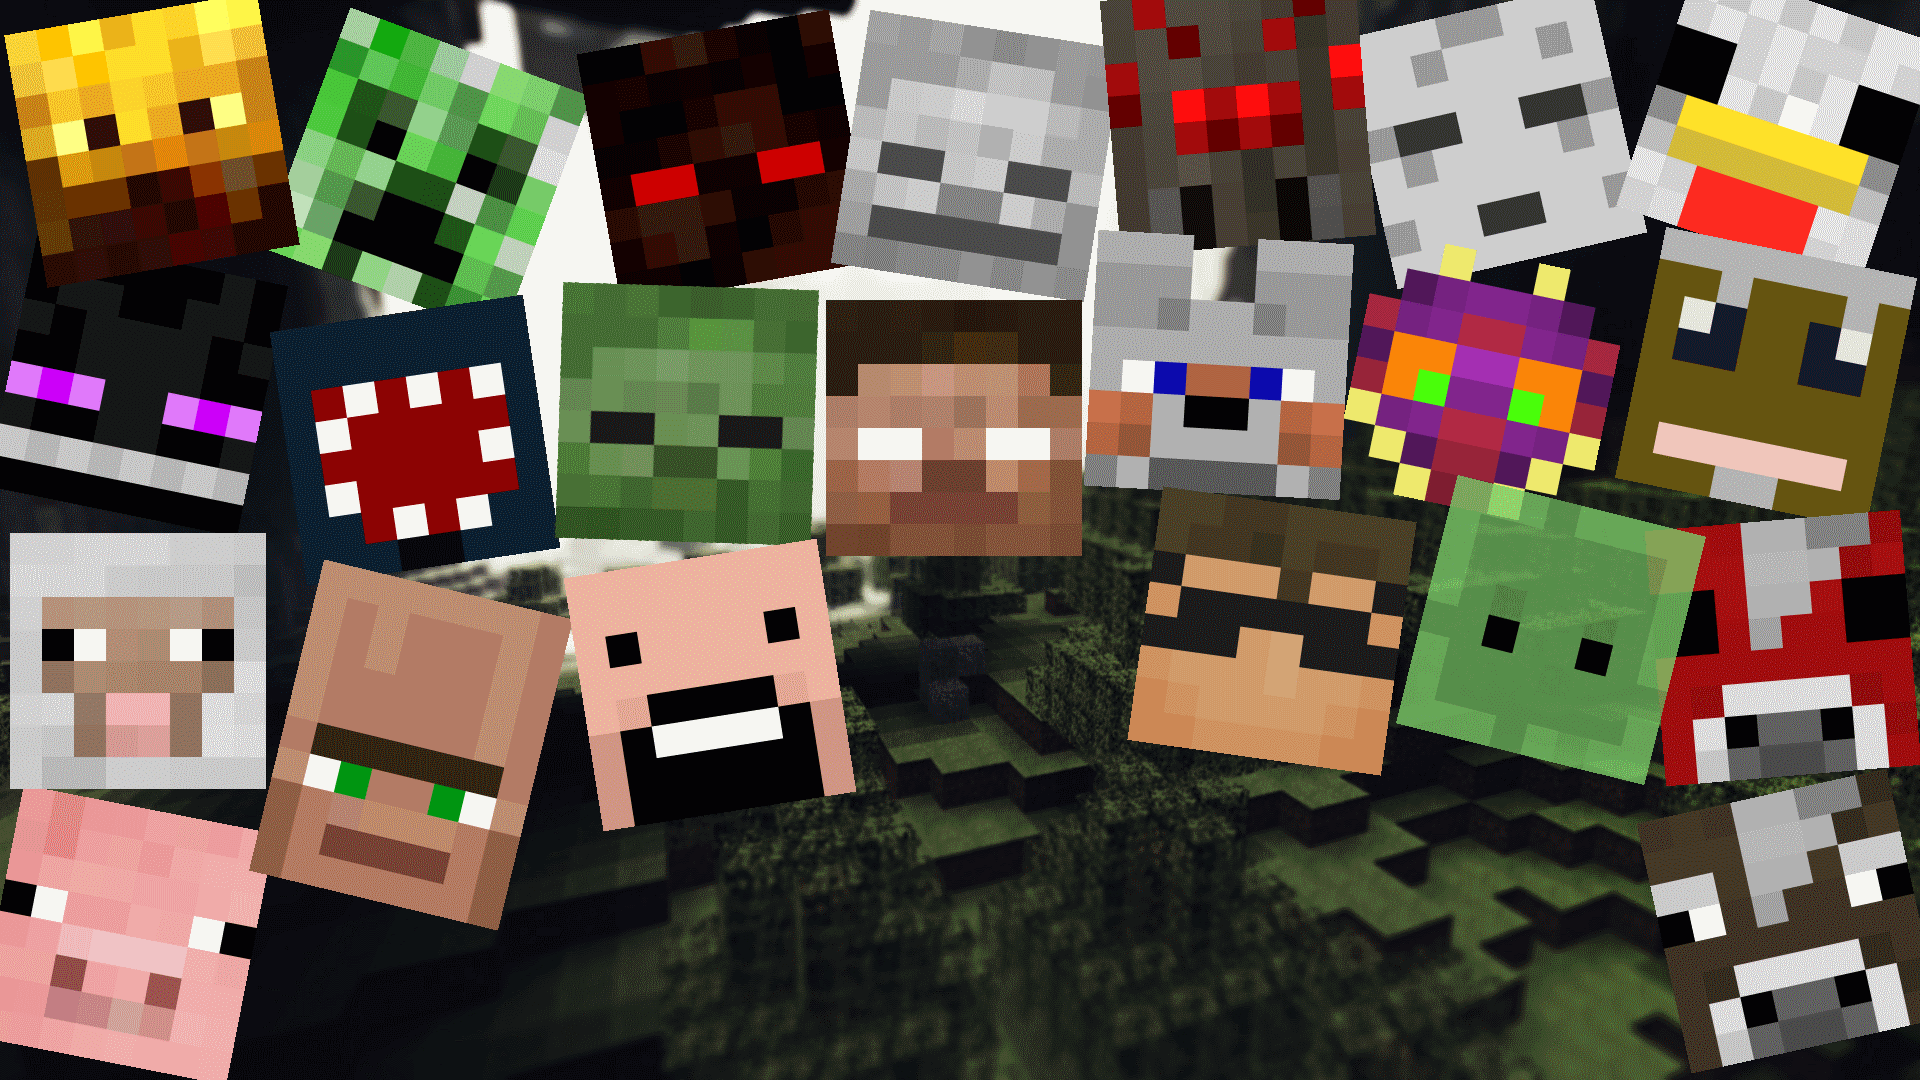 http://minecraft-forum.net/wp-content/uploads/2013/02/cb8e5__Masks-Mod-1.png